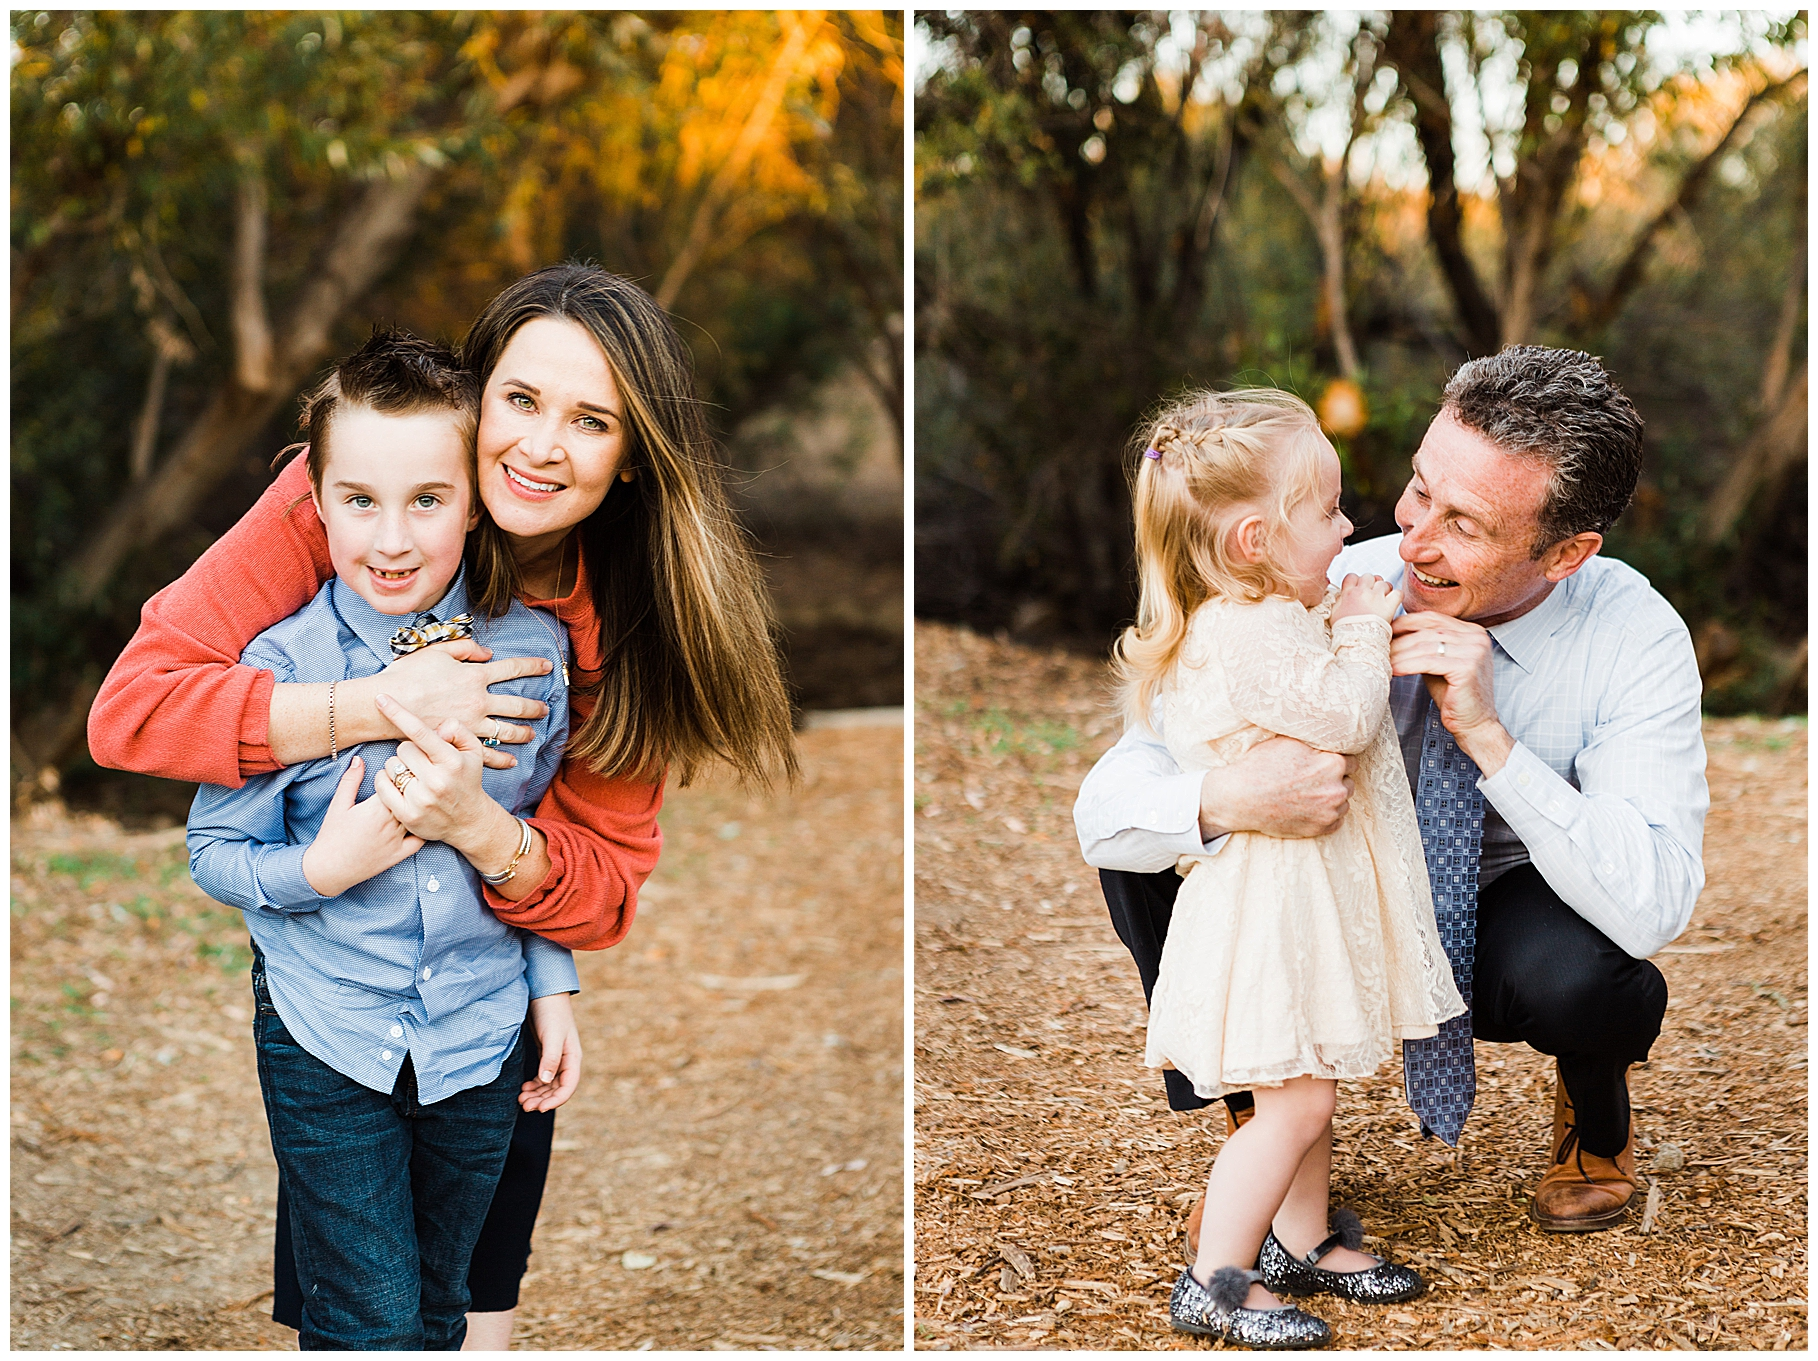 Moorpark Family Photographer